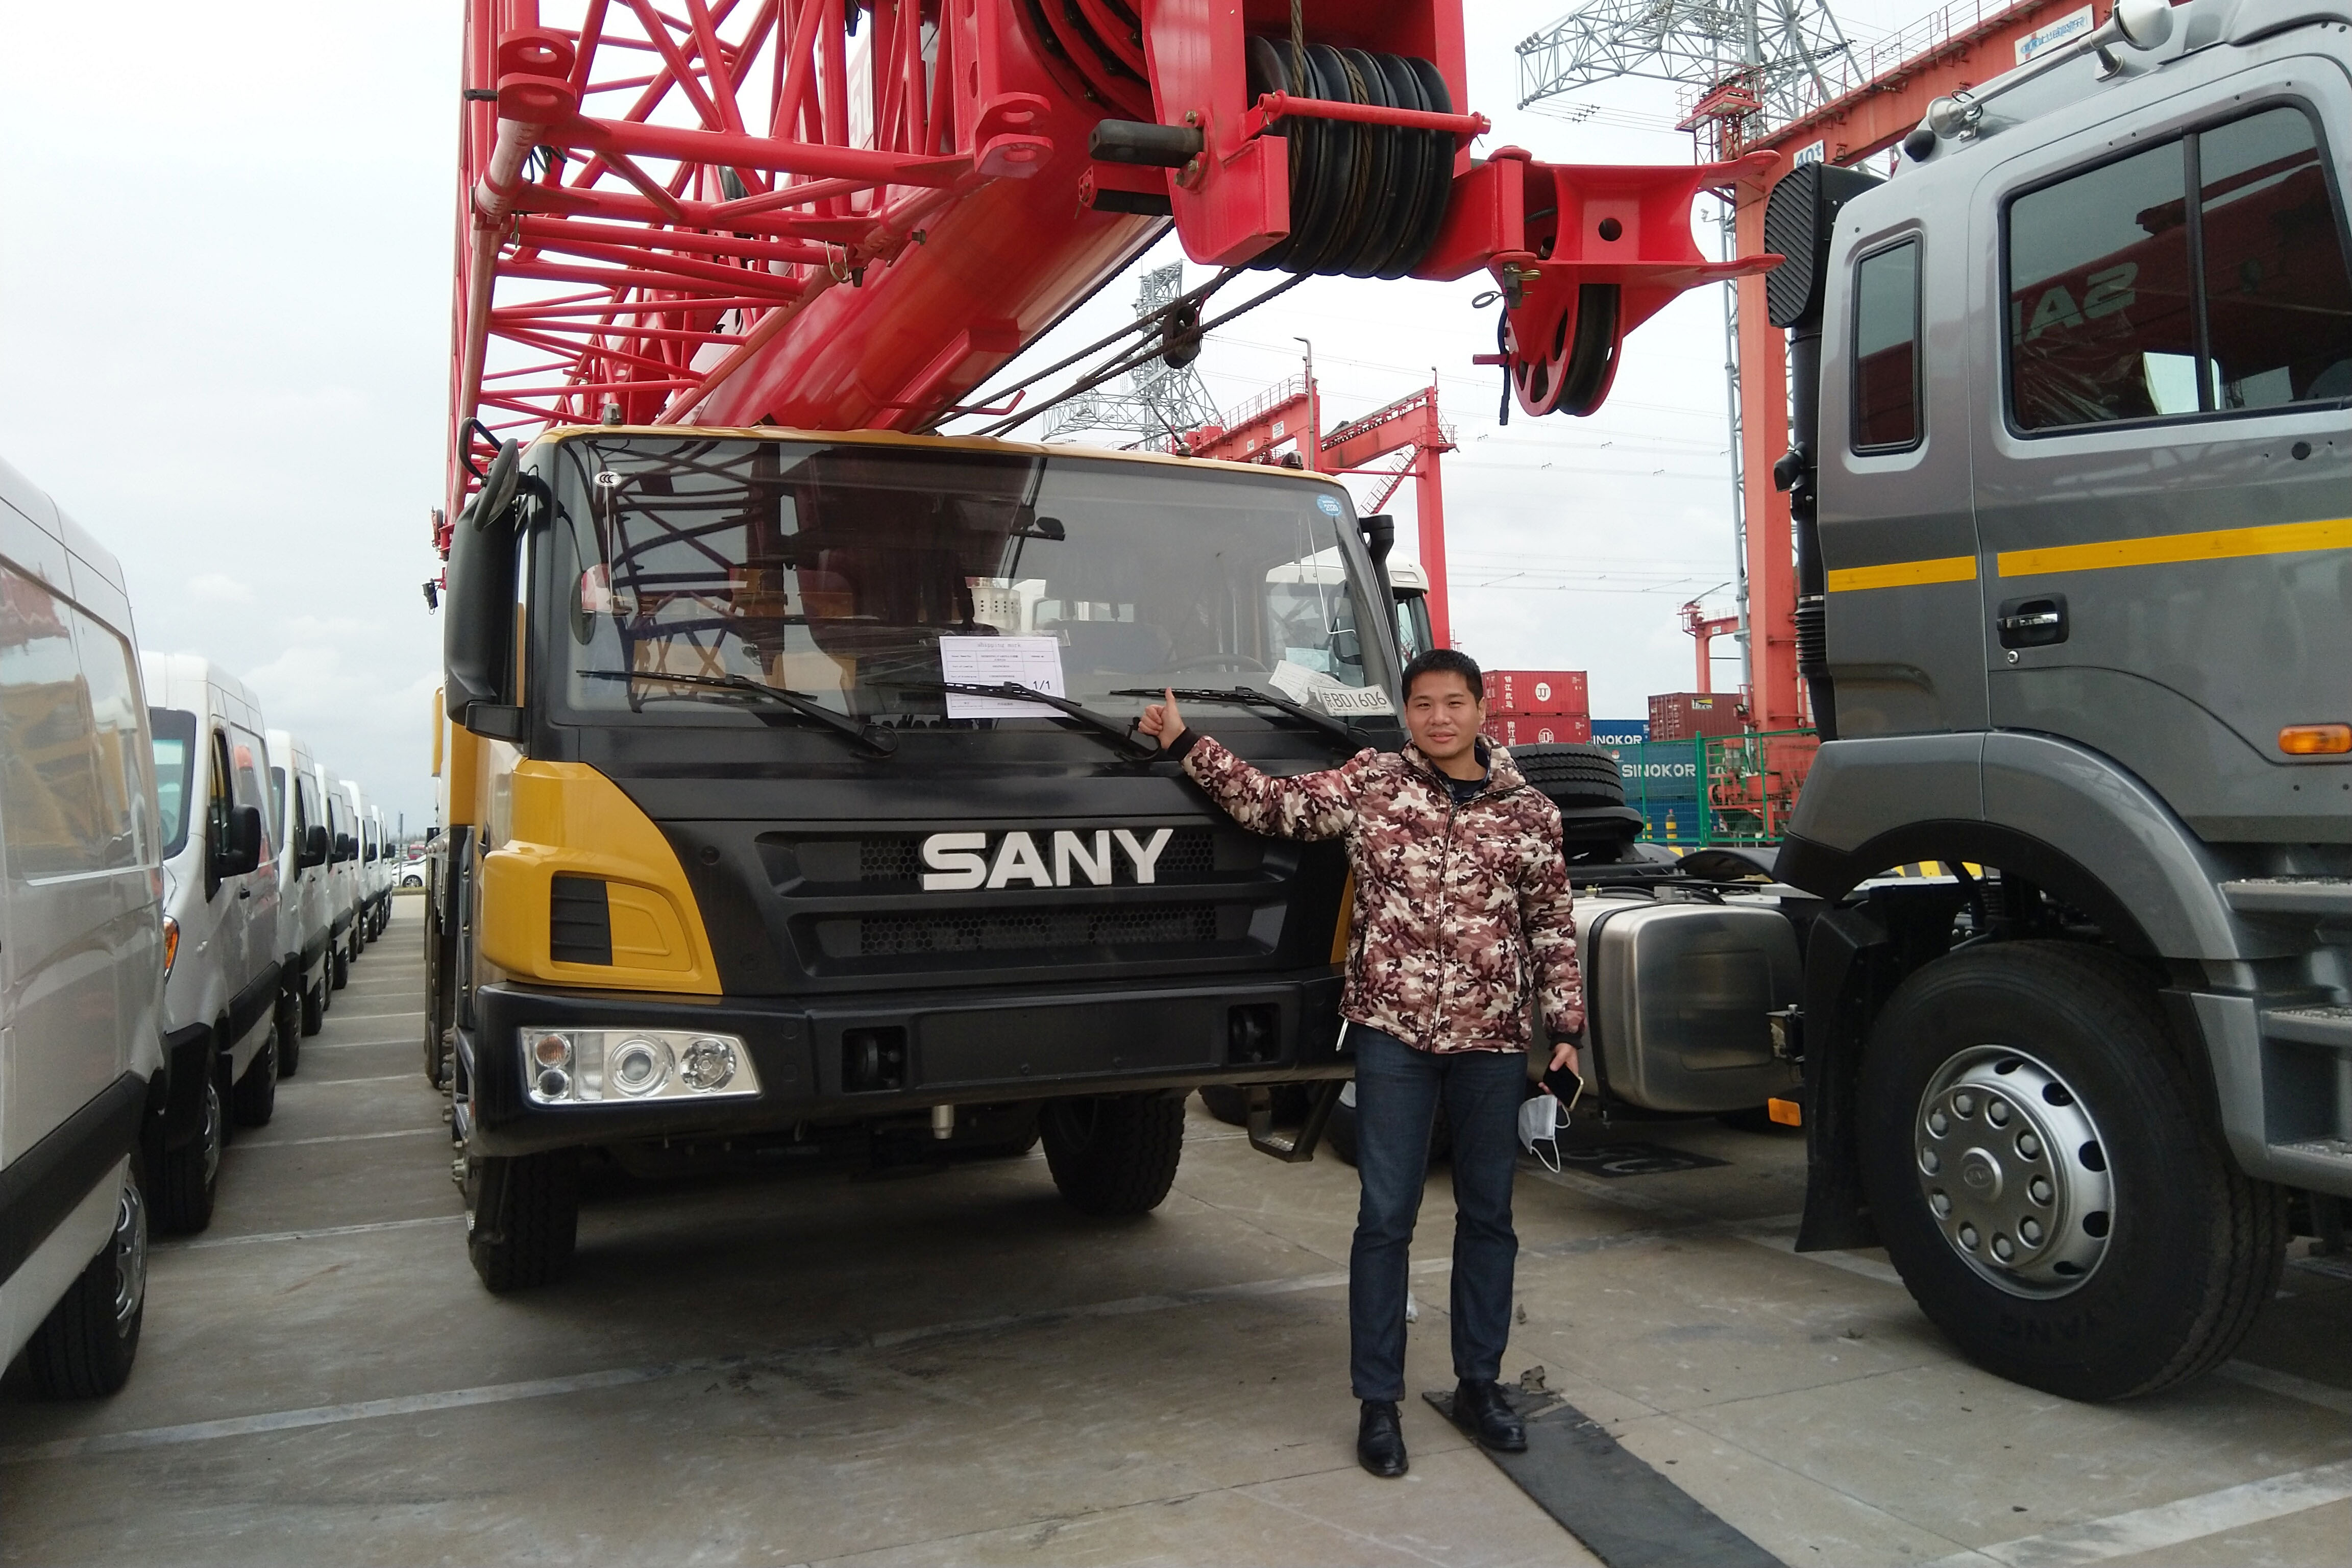 On March 31, 2020, the mobile cranes truck sold to Ukraine arrived at the port.